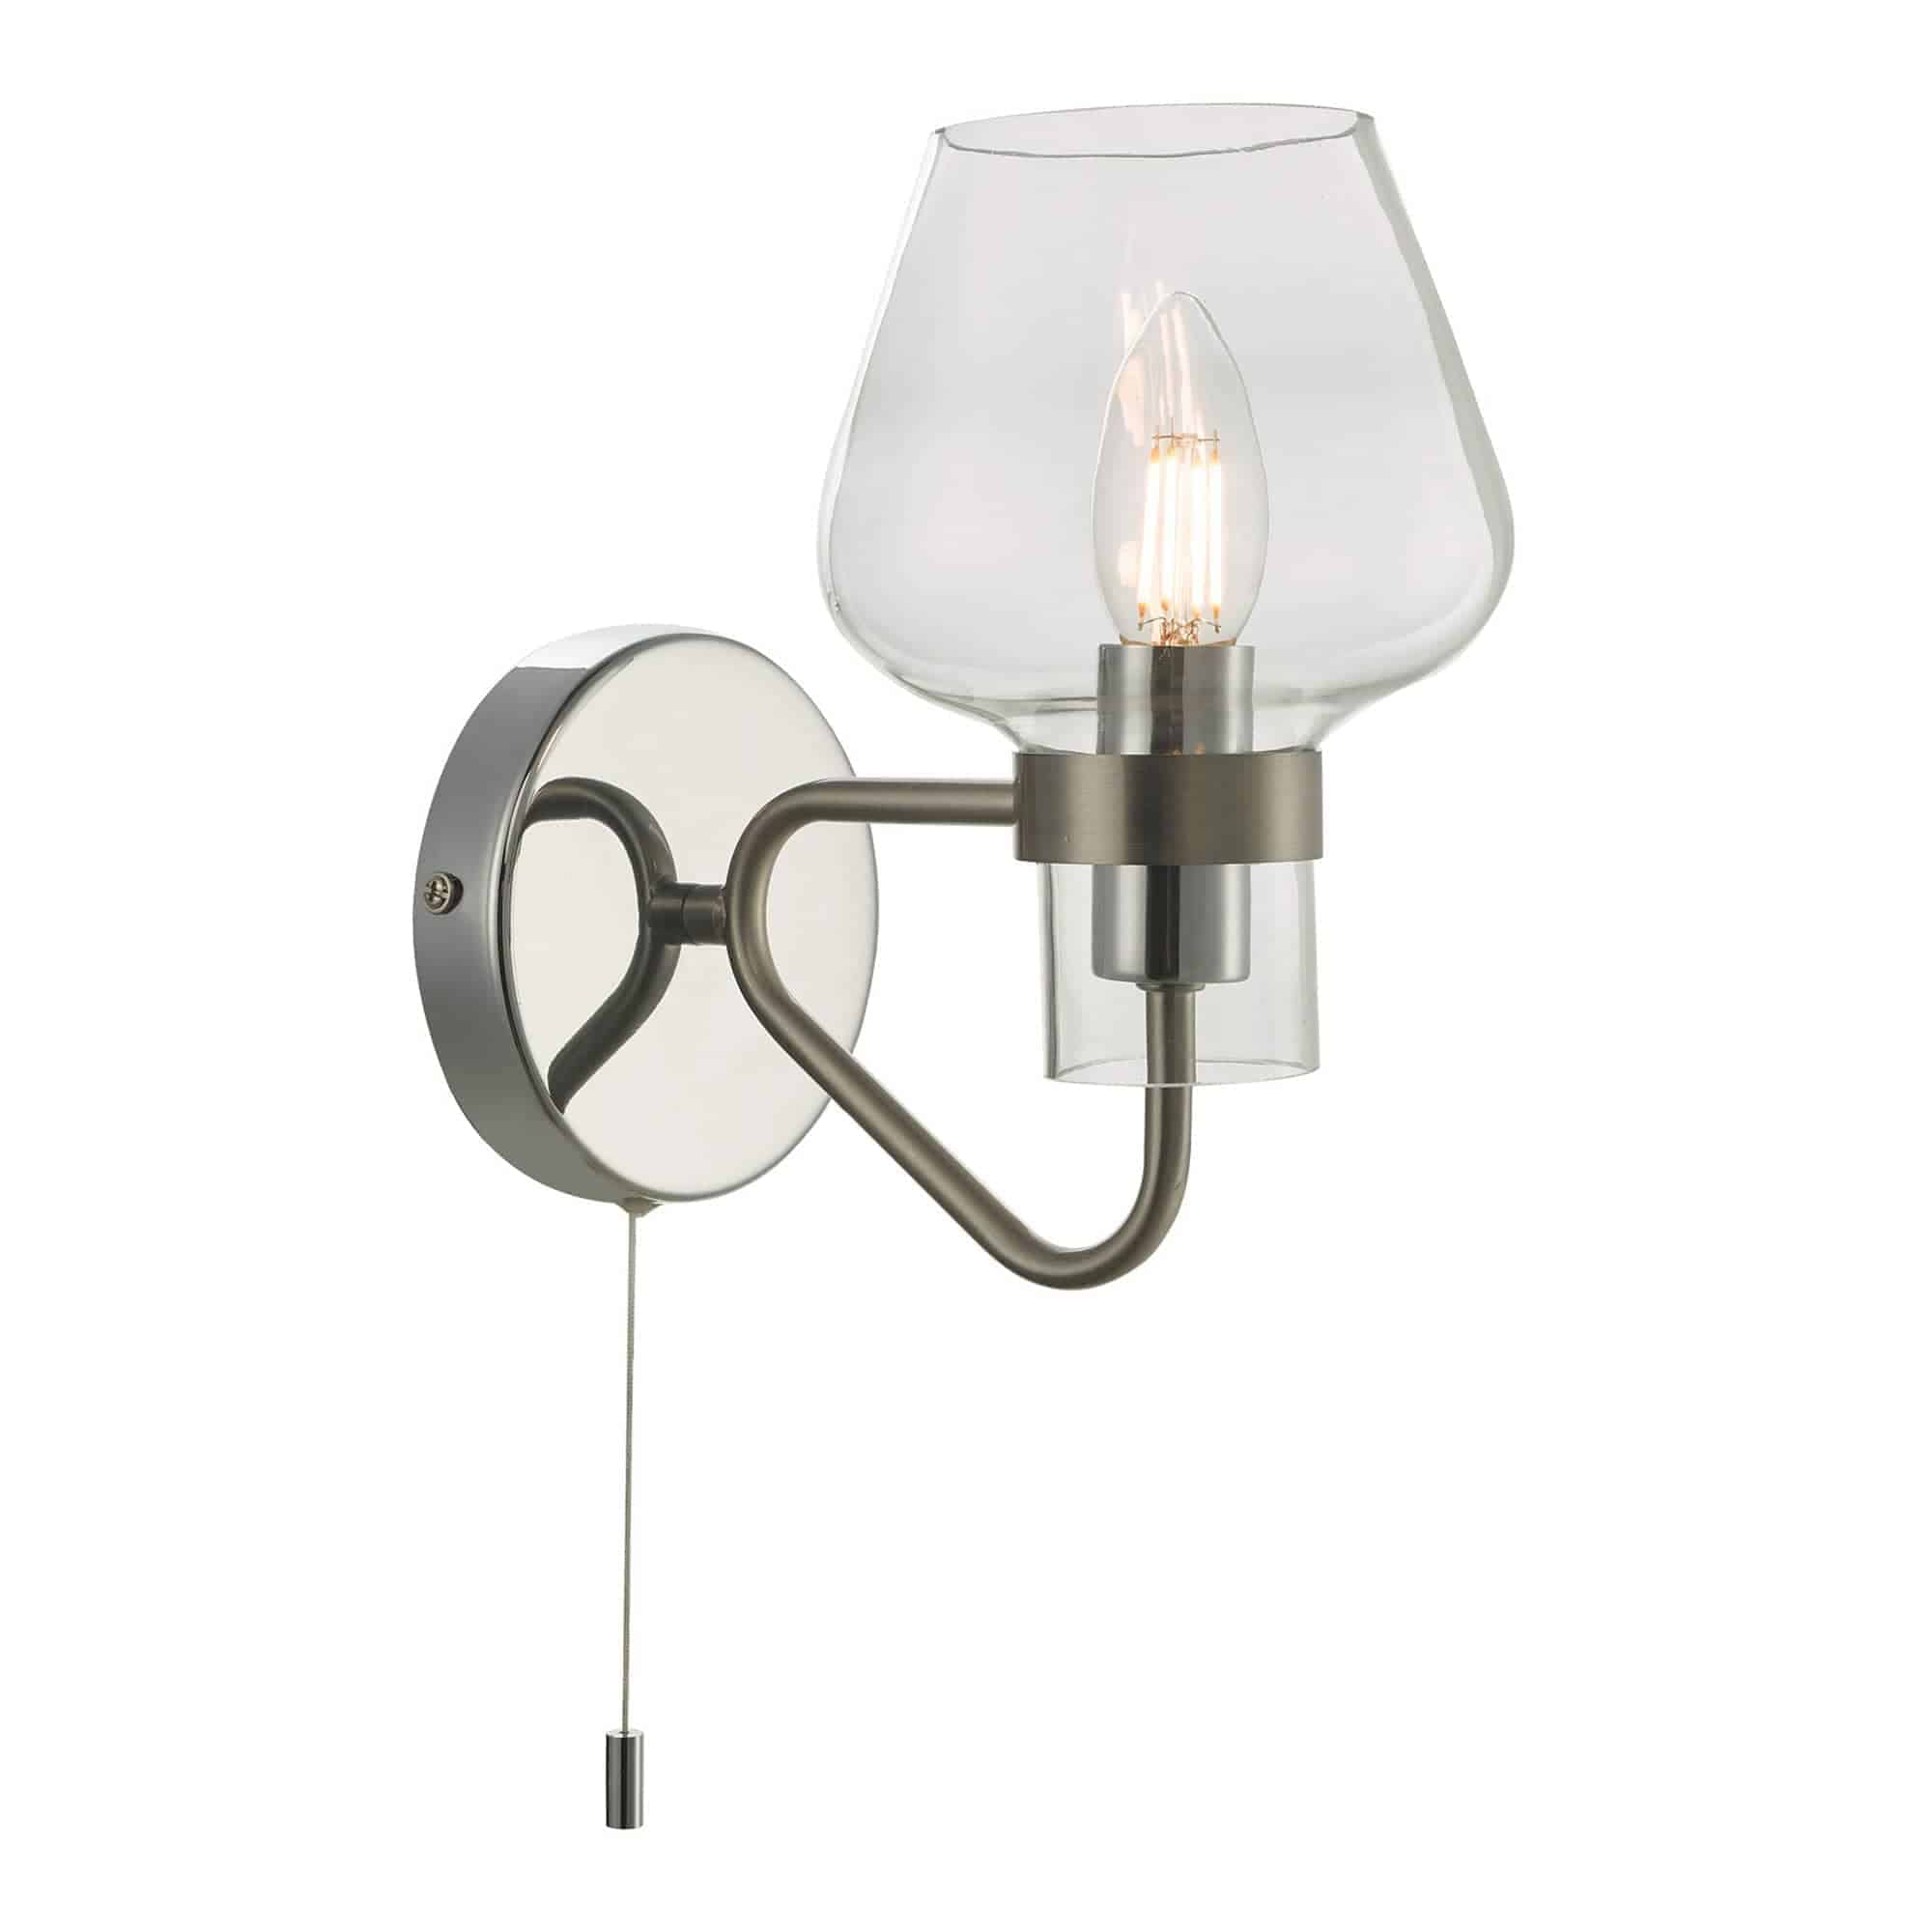 Dar KET0746 Keta 1 Light Wall Light Satin Chrome & Polished Chrome